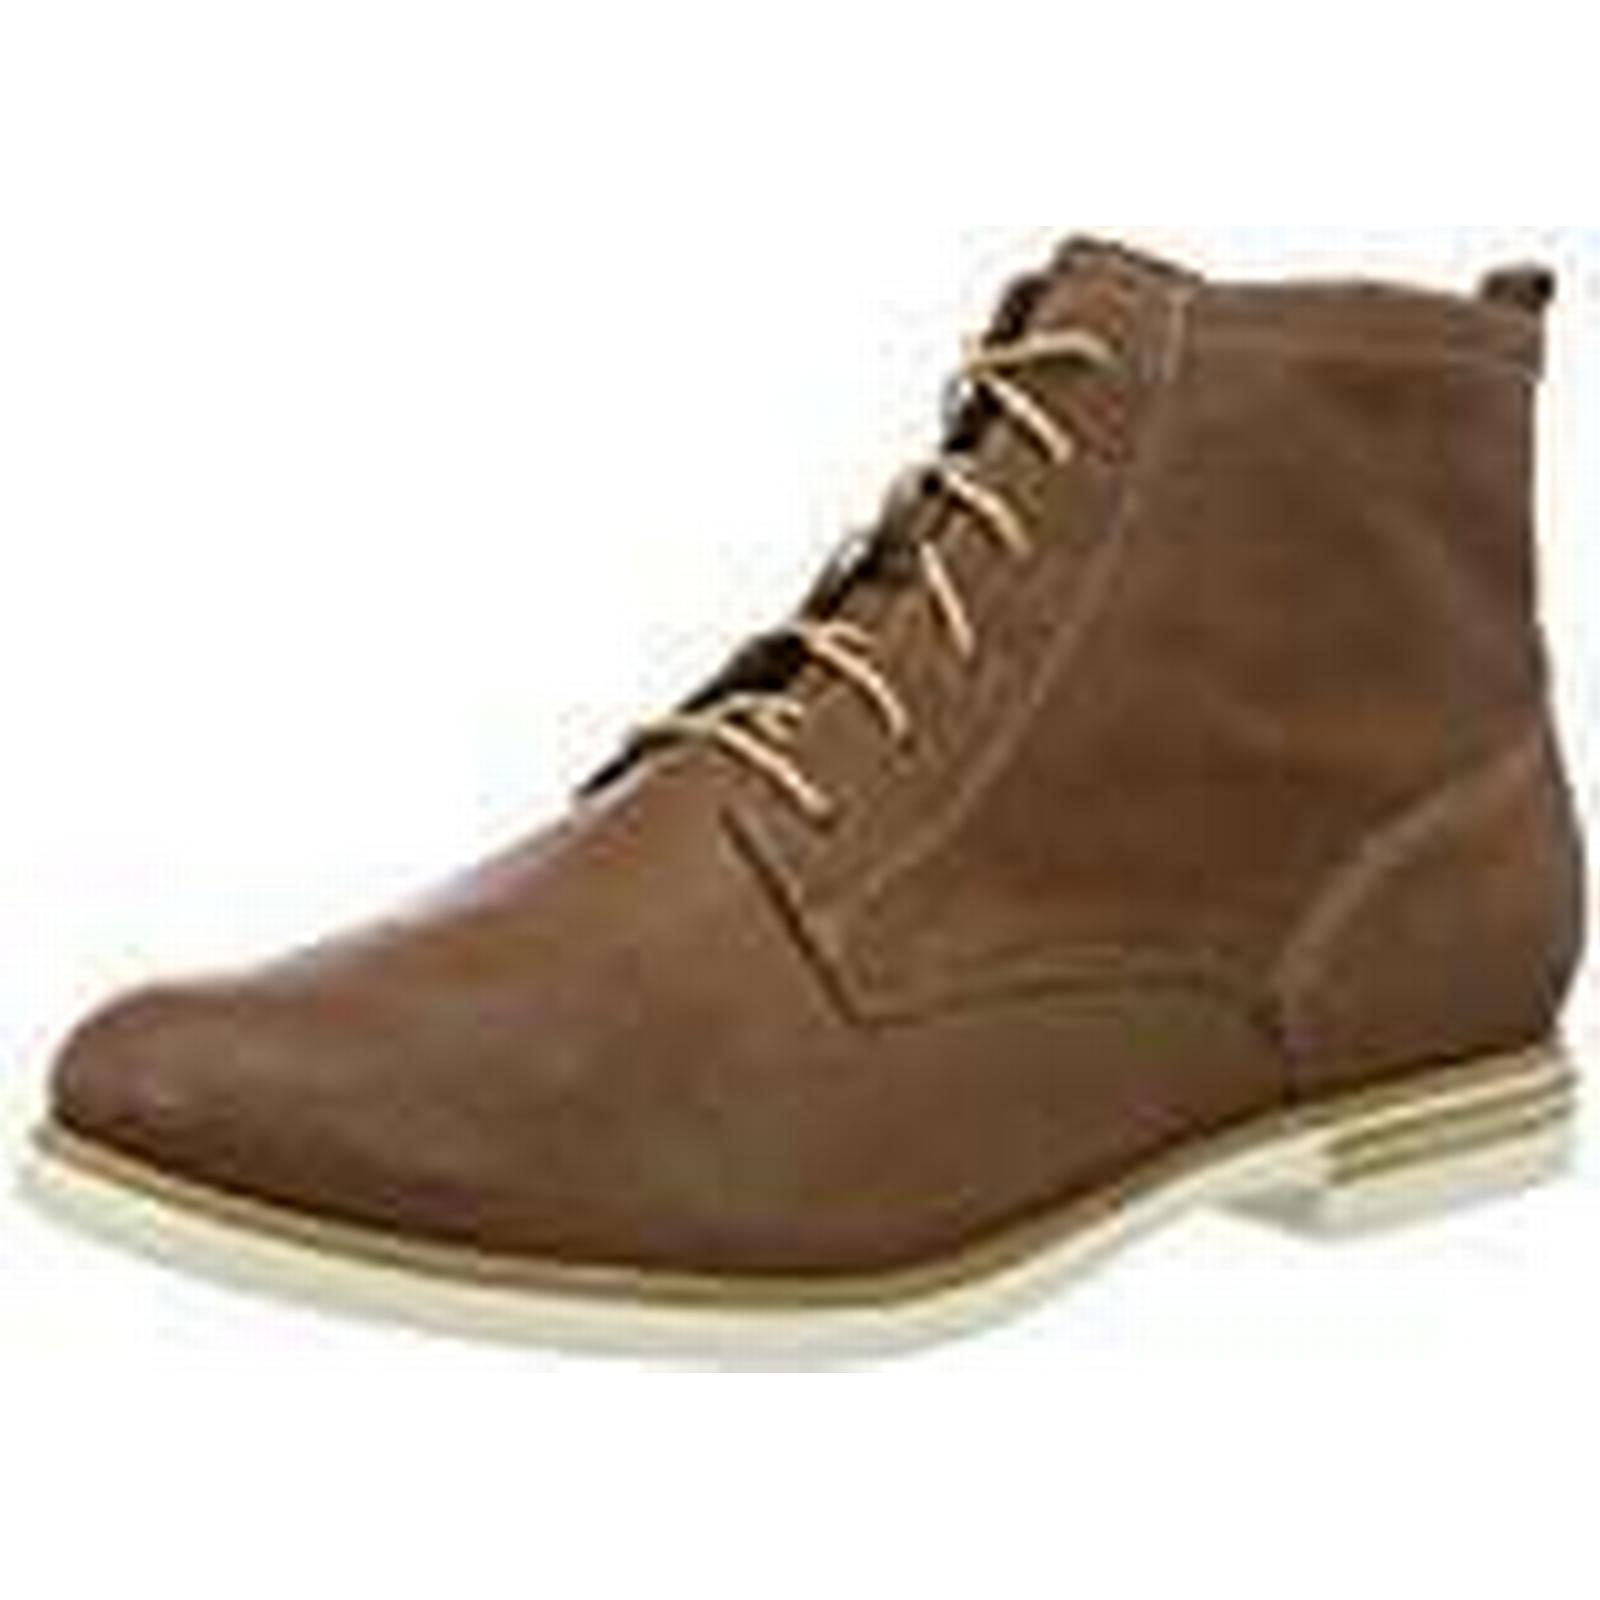 Tamaris 25103, (Cognac Women's Ankle Boots, Brown (Cognac 25103, 305), 4 UK (37 EU) db9694